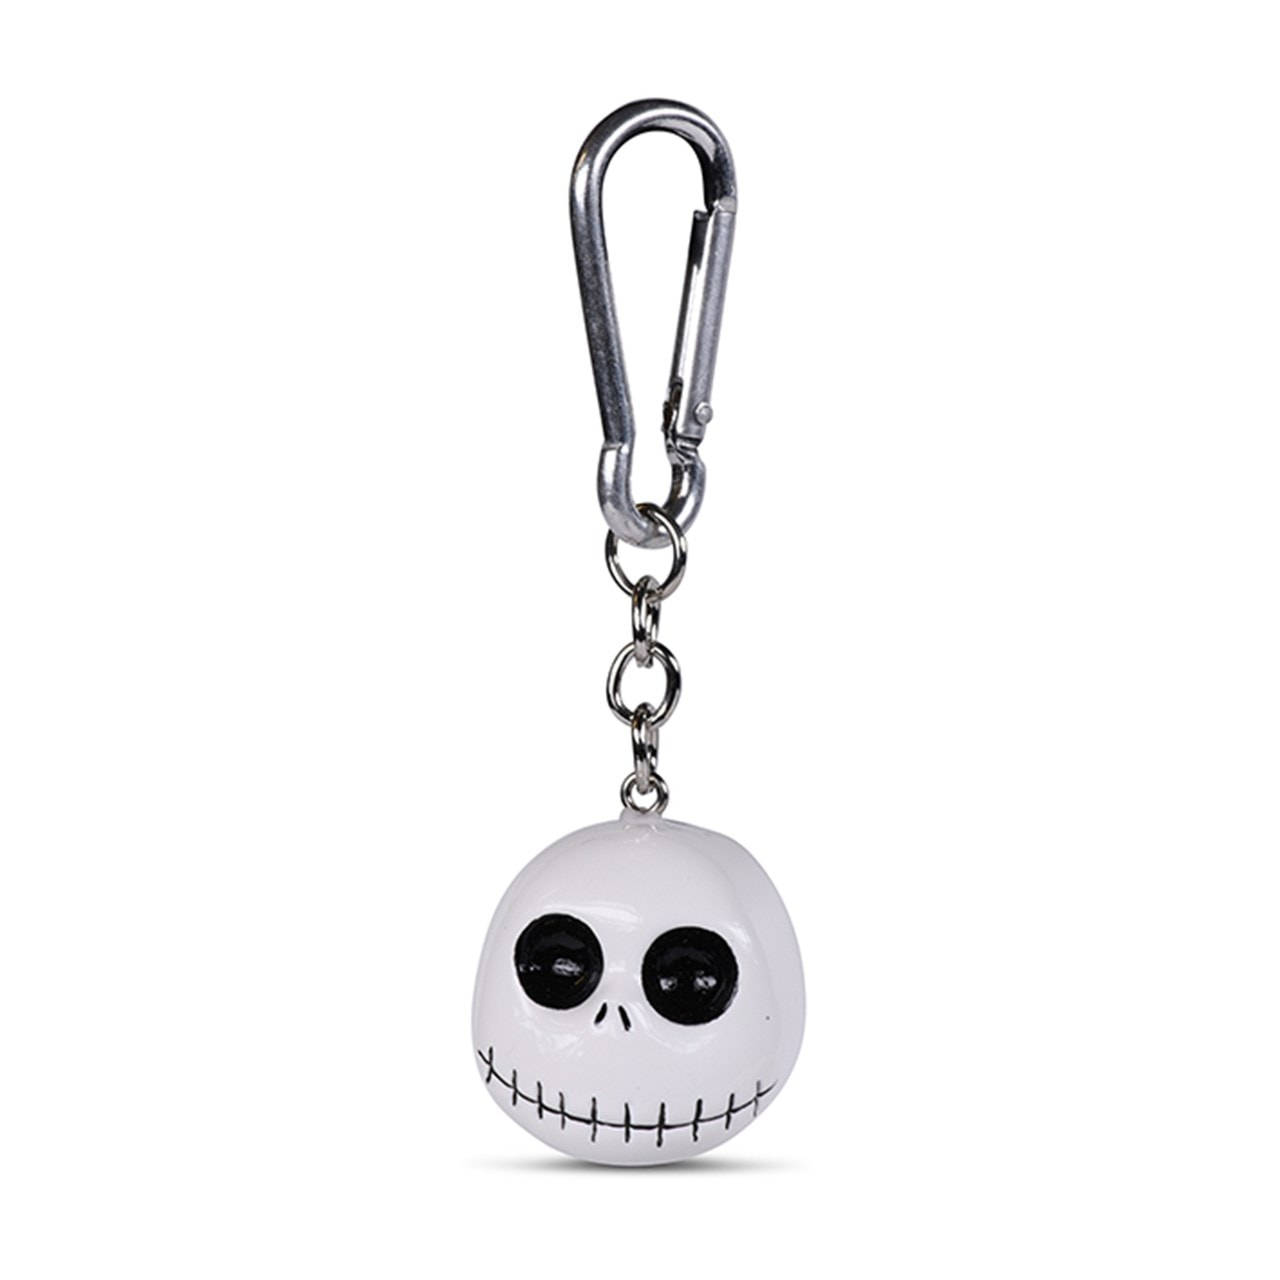 The Nightmare Before Christmas 3D Keychain - 2